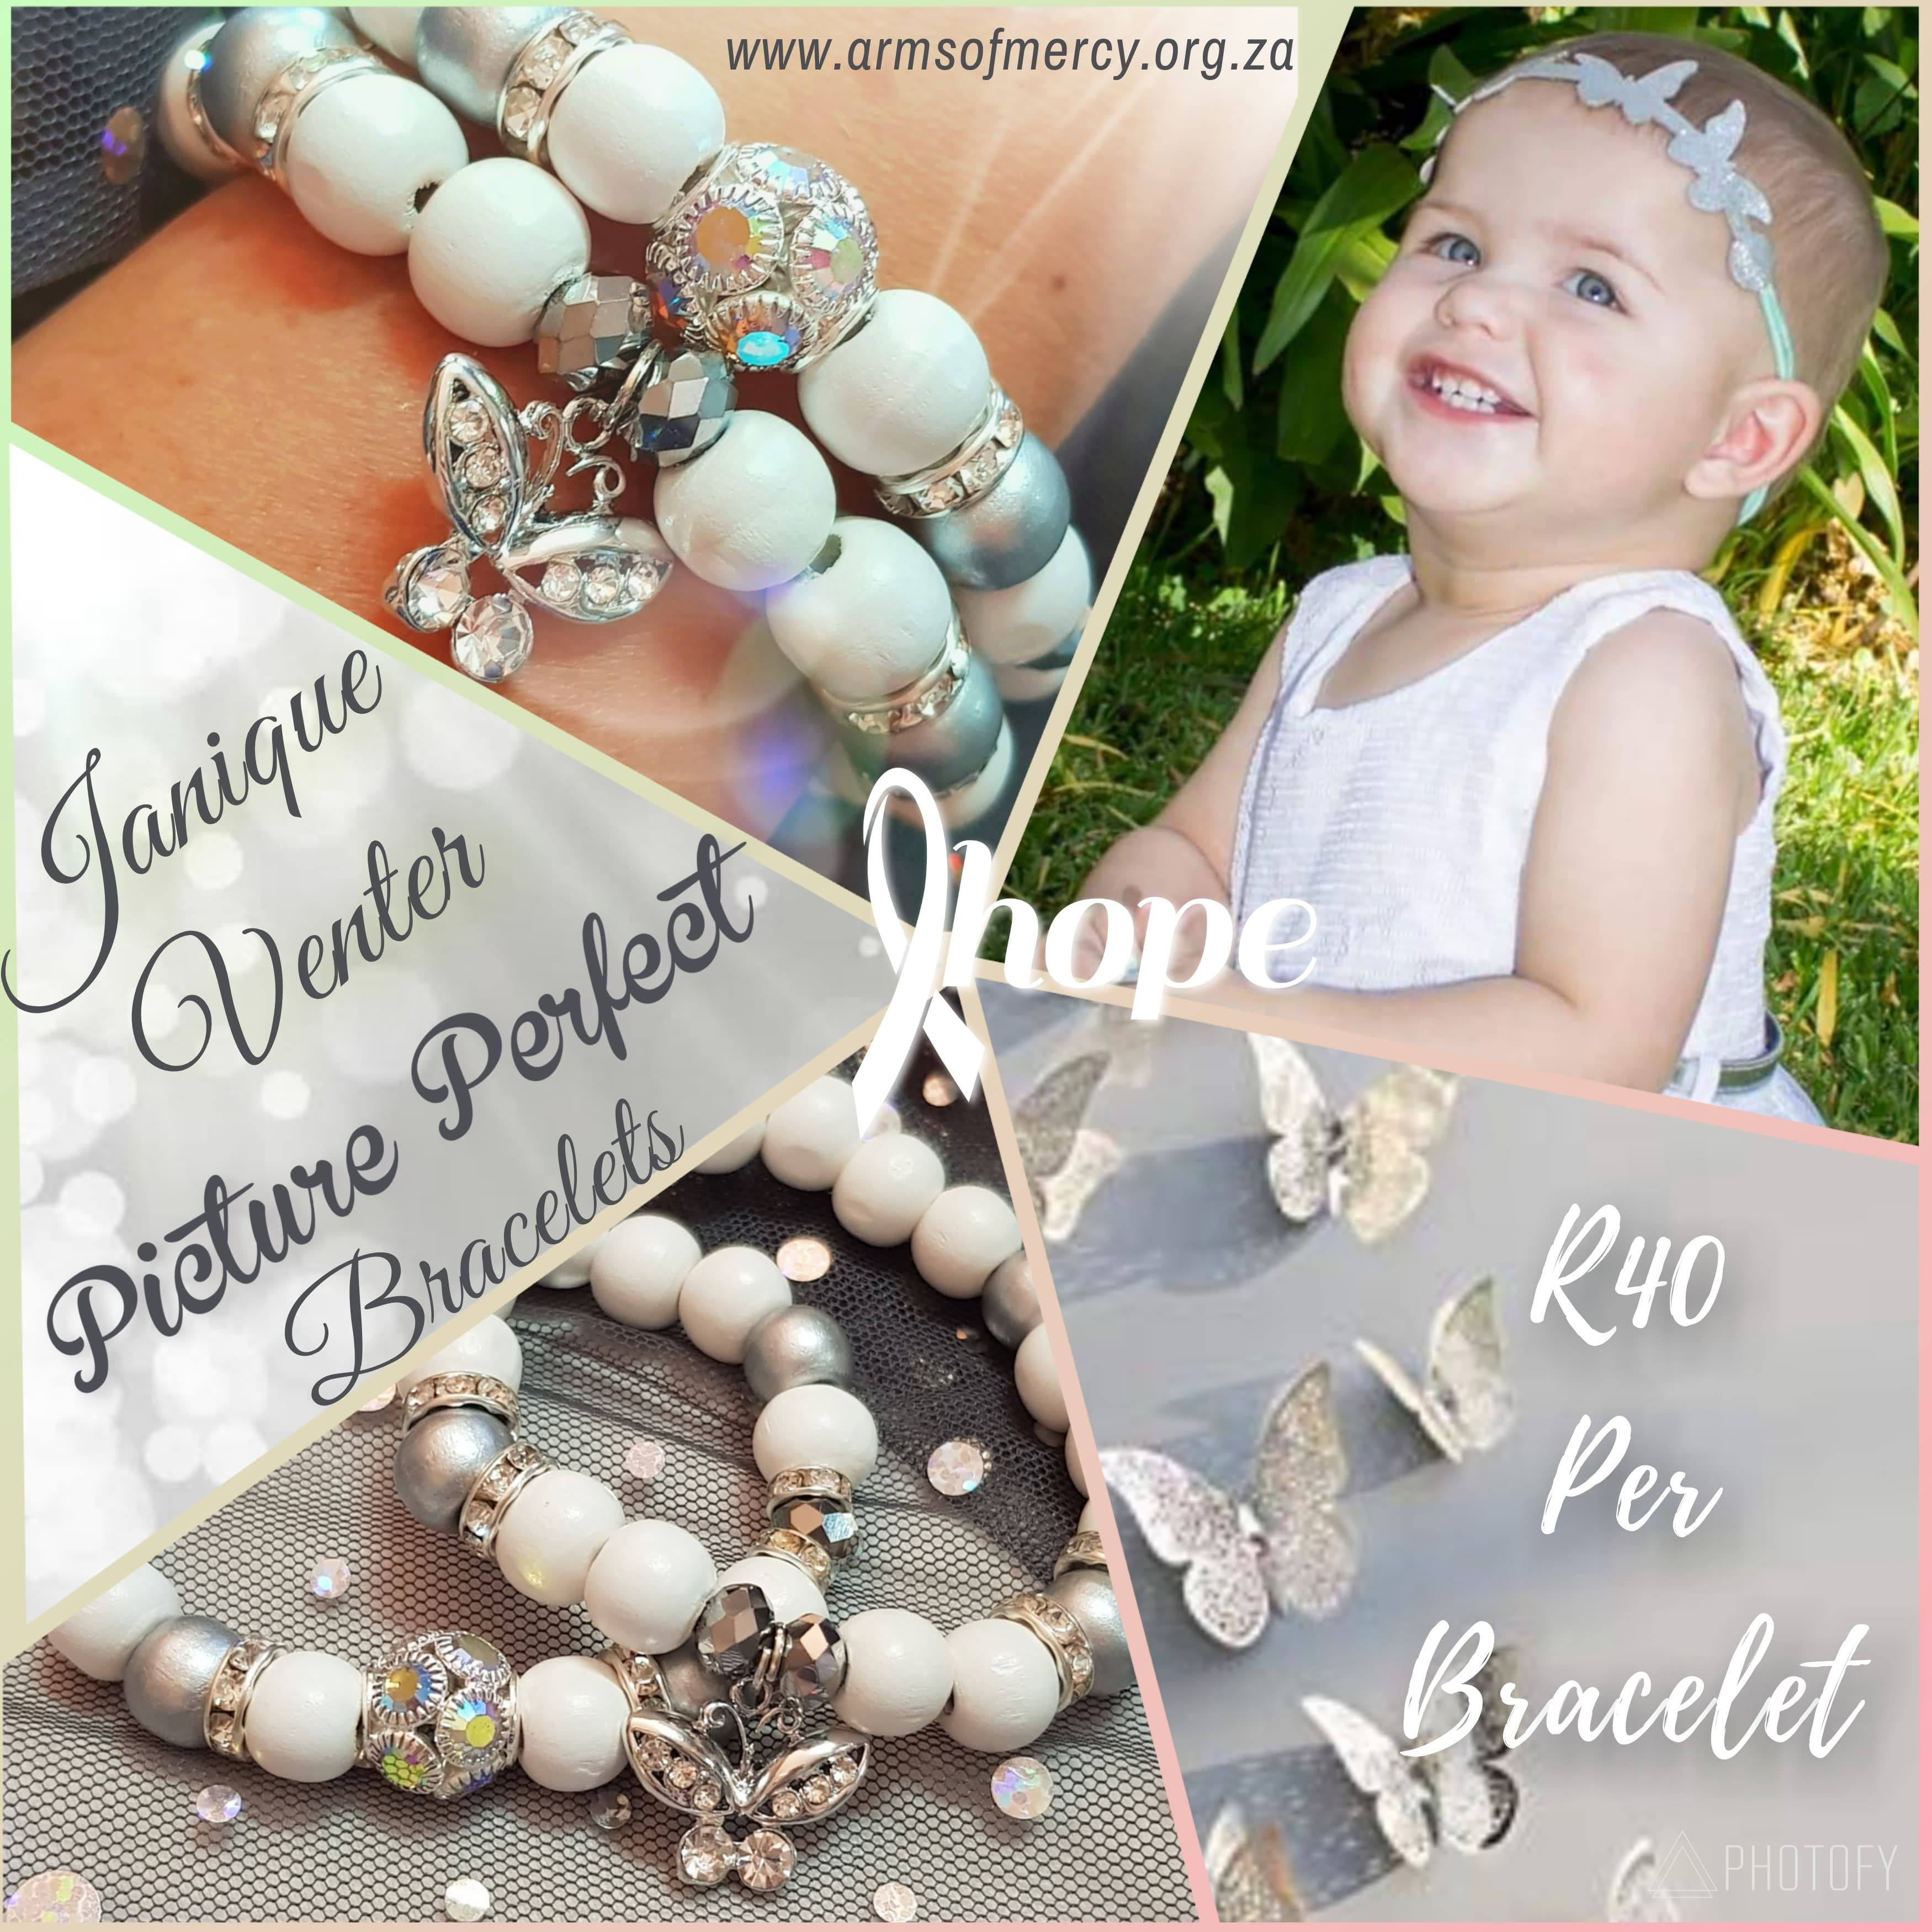 Picture Perfect Bracelets for Janique Venter - Arms of Mercy NPC